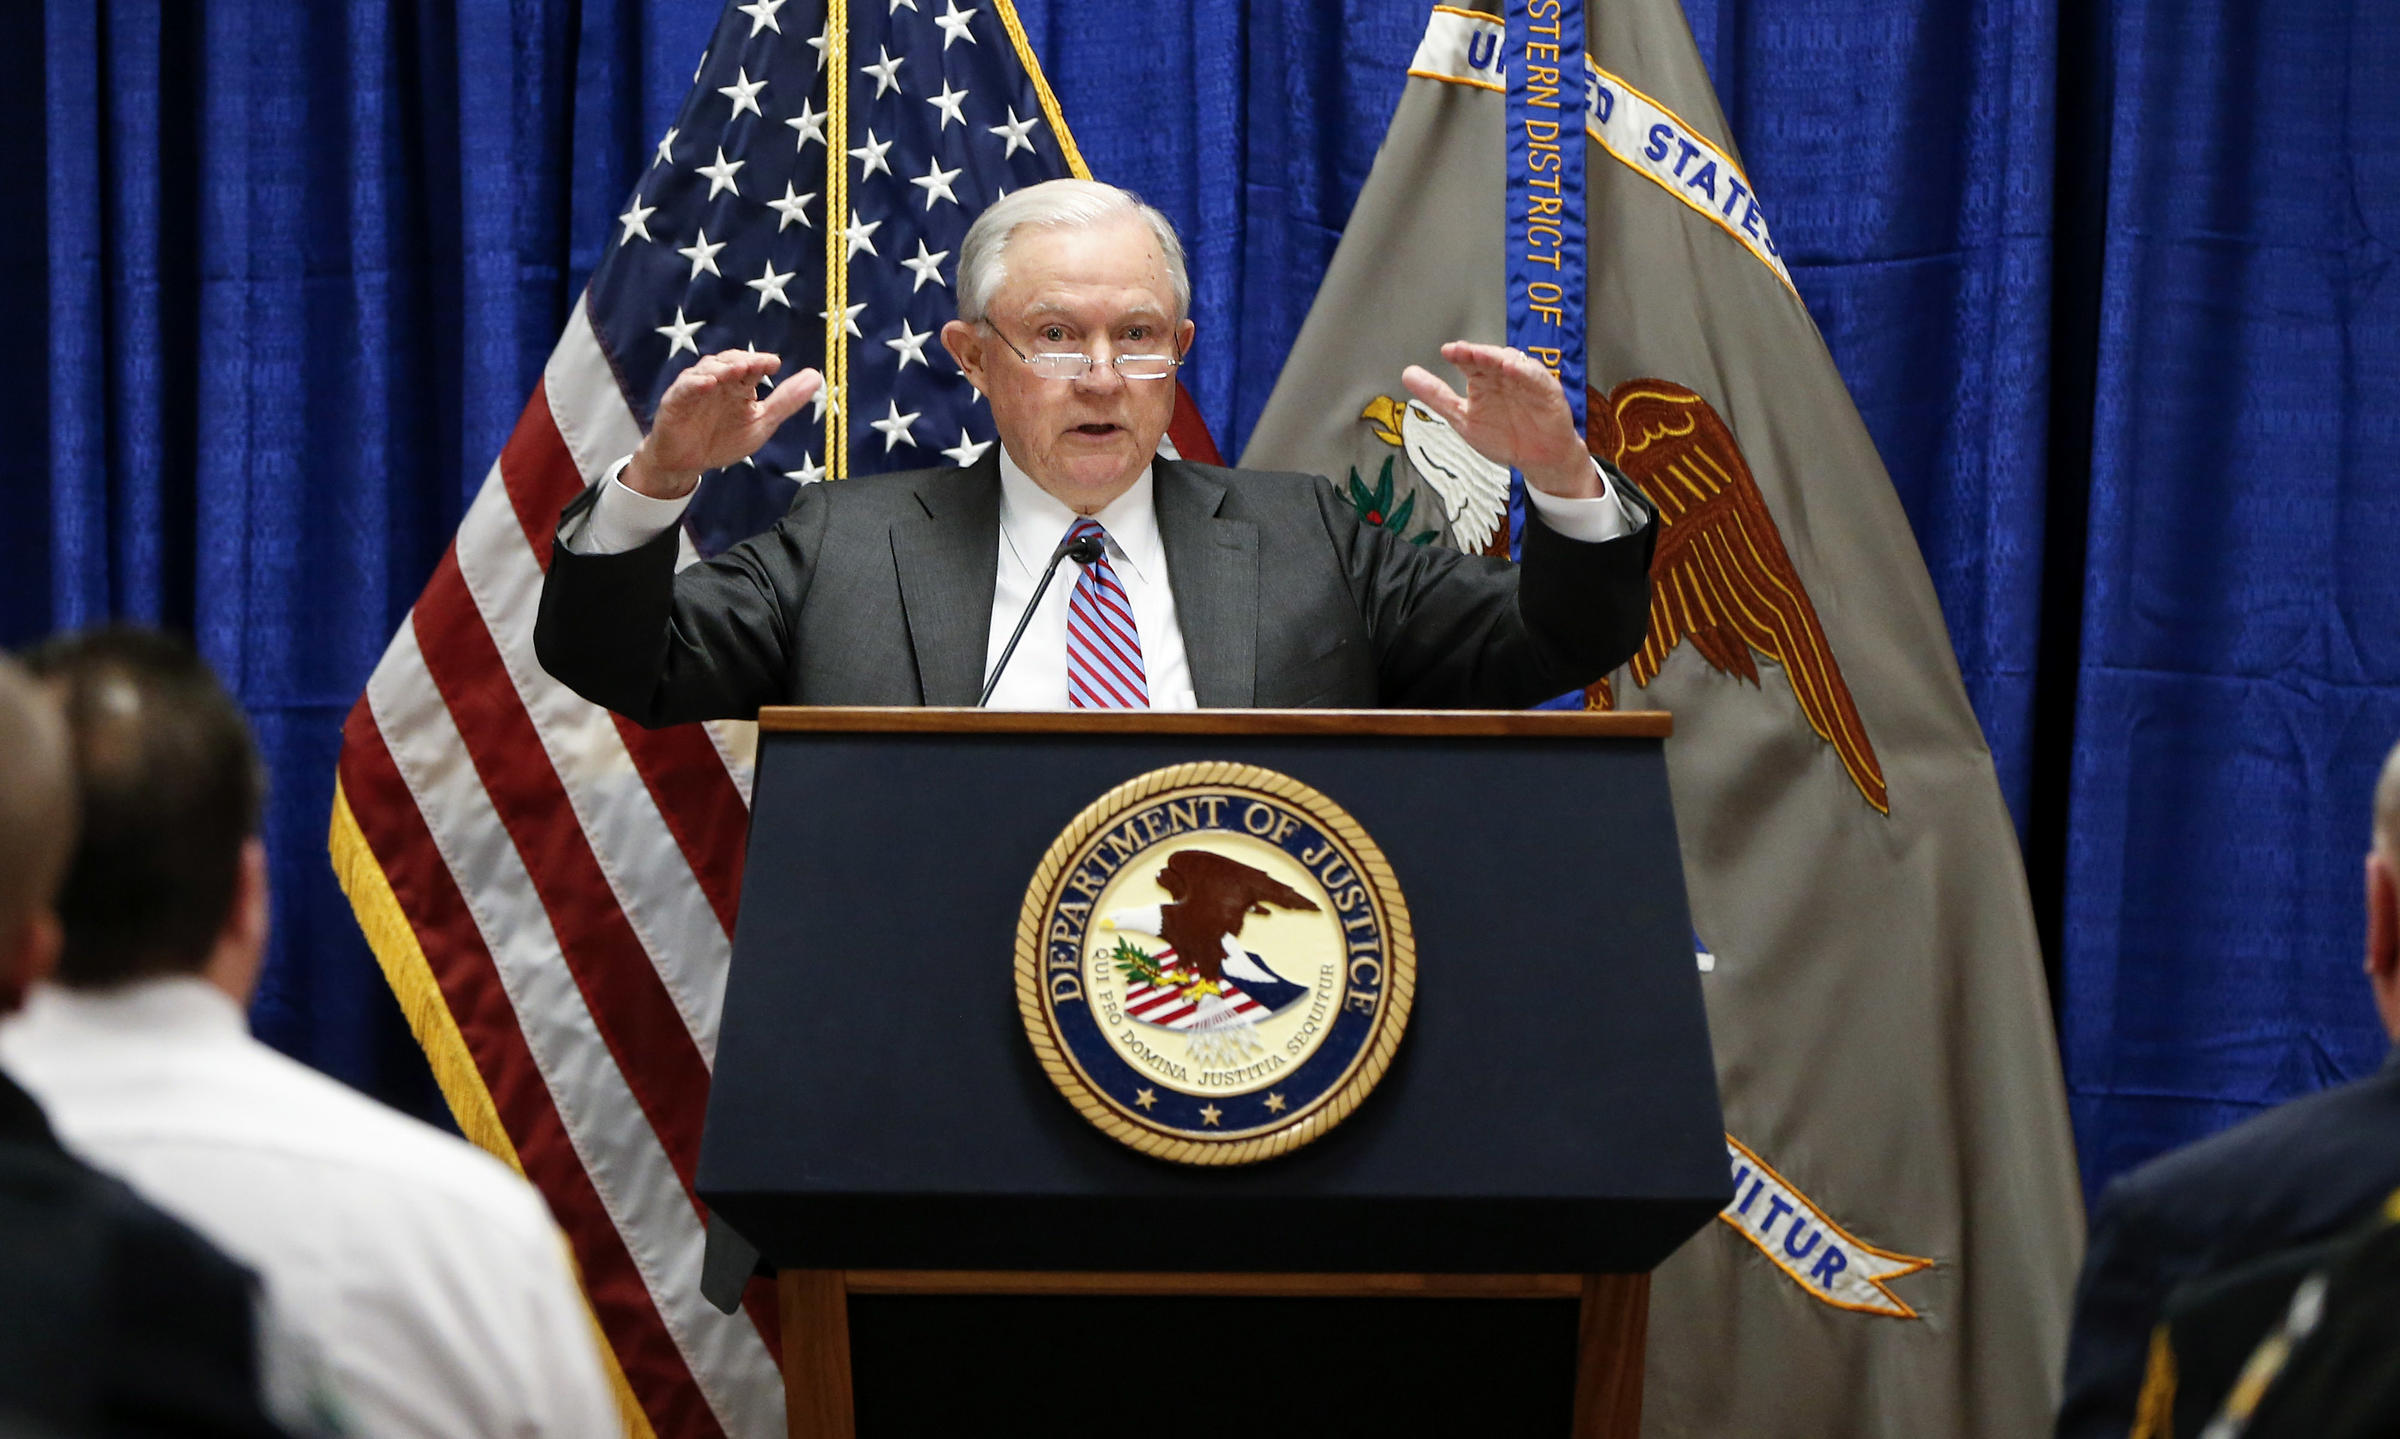 Attorney General Jeff Sessions to speak in Louisville